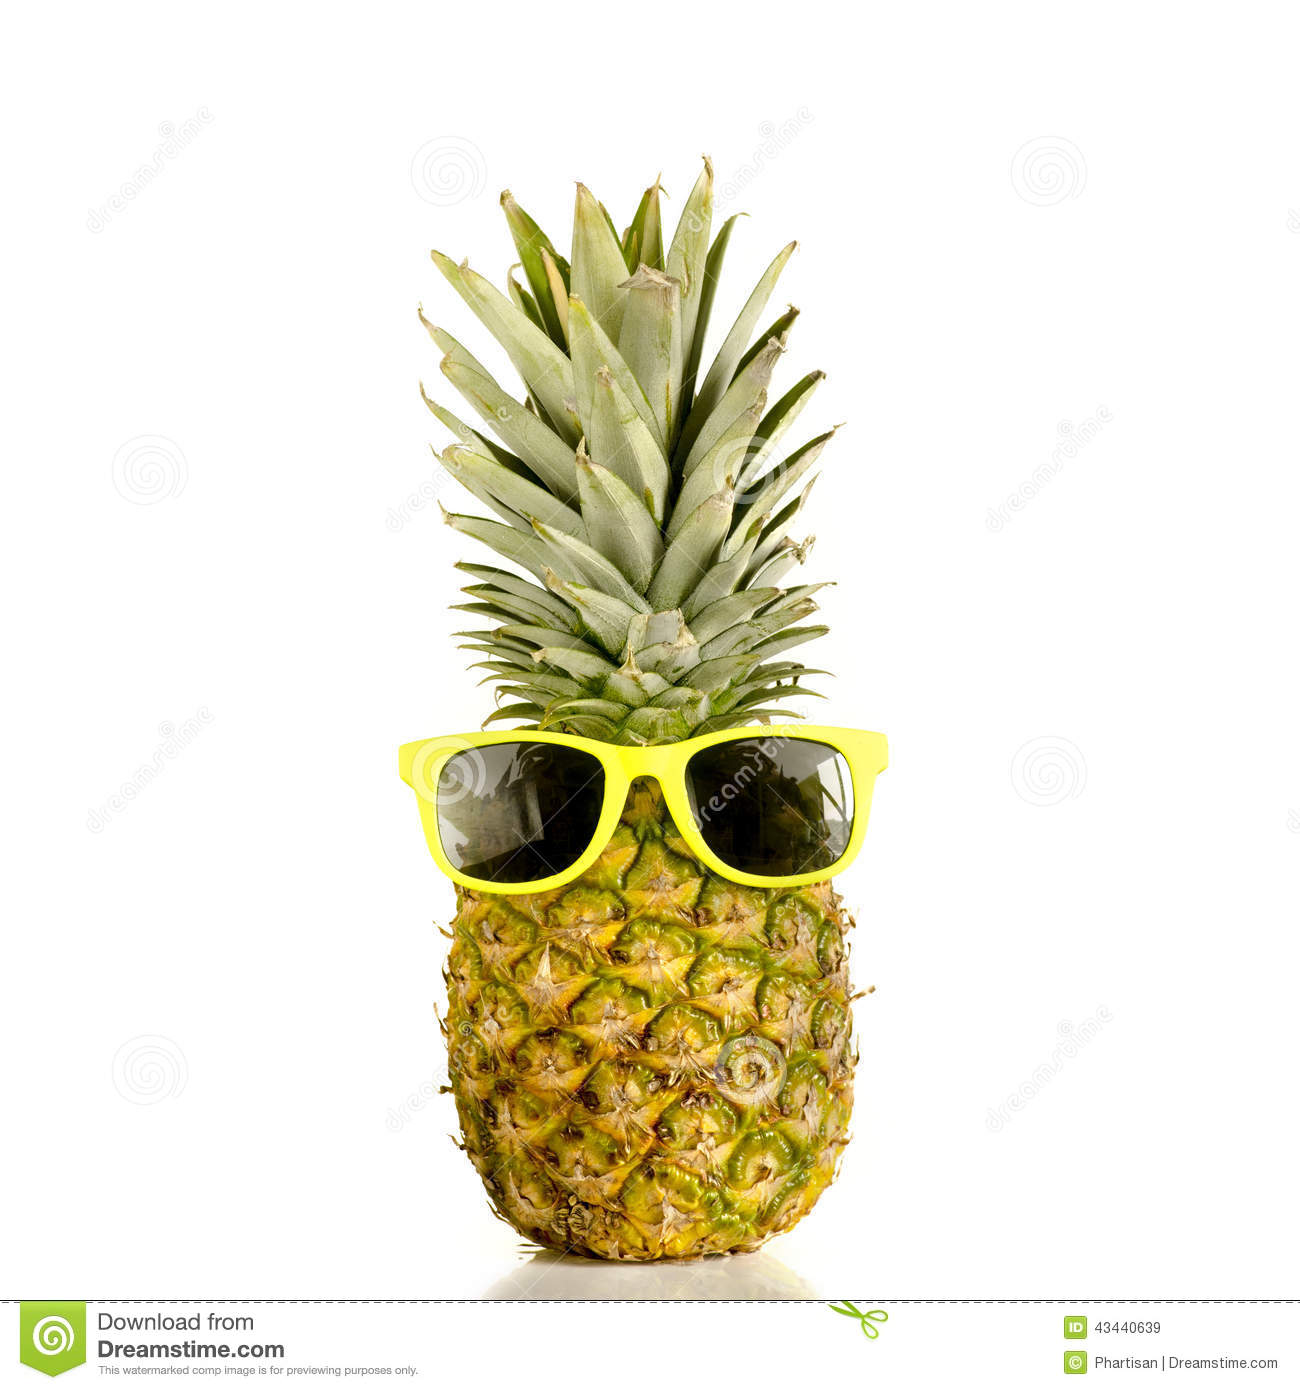 Pineapple With Sunglasses Tumblr Pineapple Wearing Sunglasses Stock Image Image Of Design